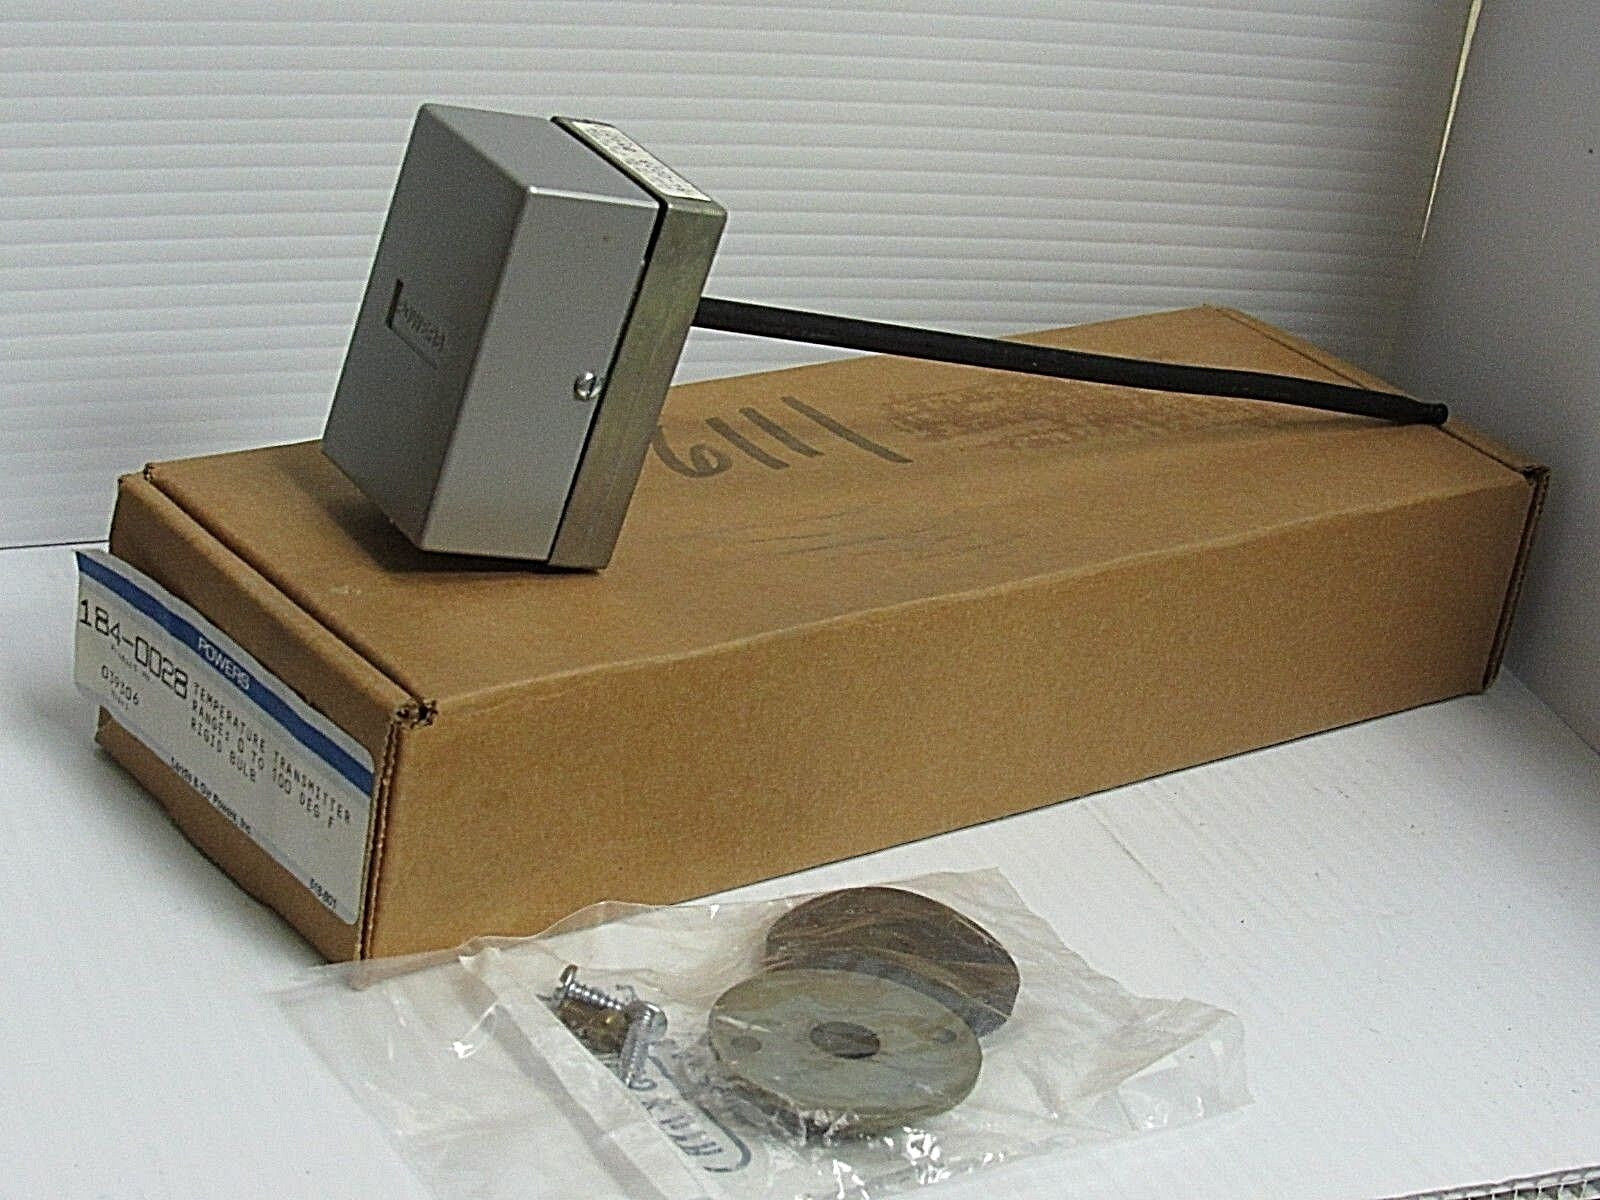 NEW POWERS TEMPERATURE TRANSMITTER 184-0028 1840028 0-100°F